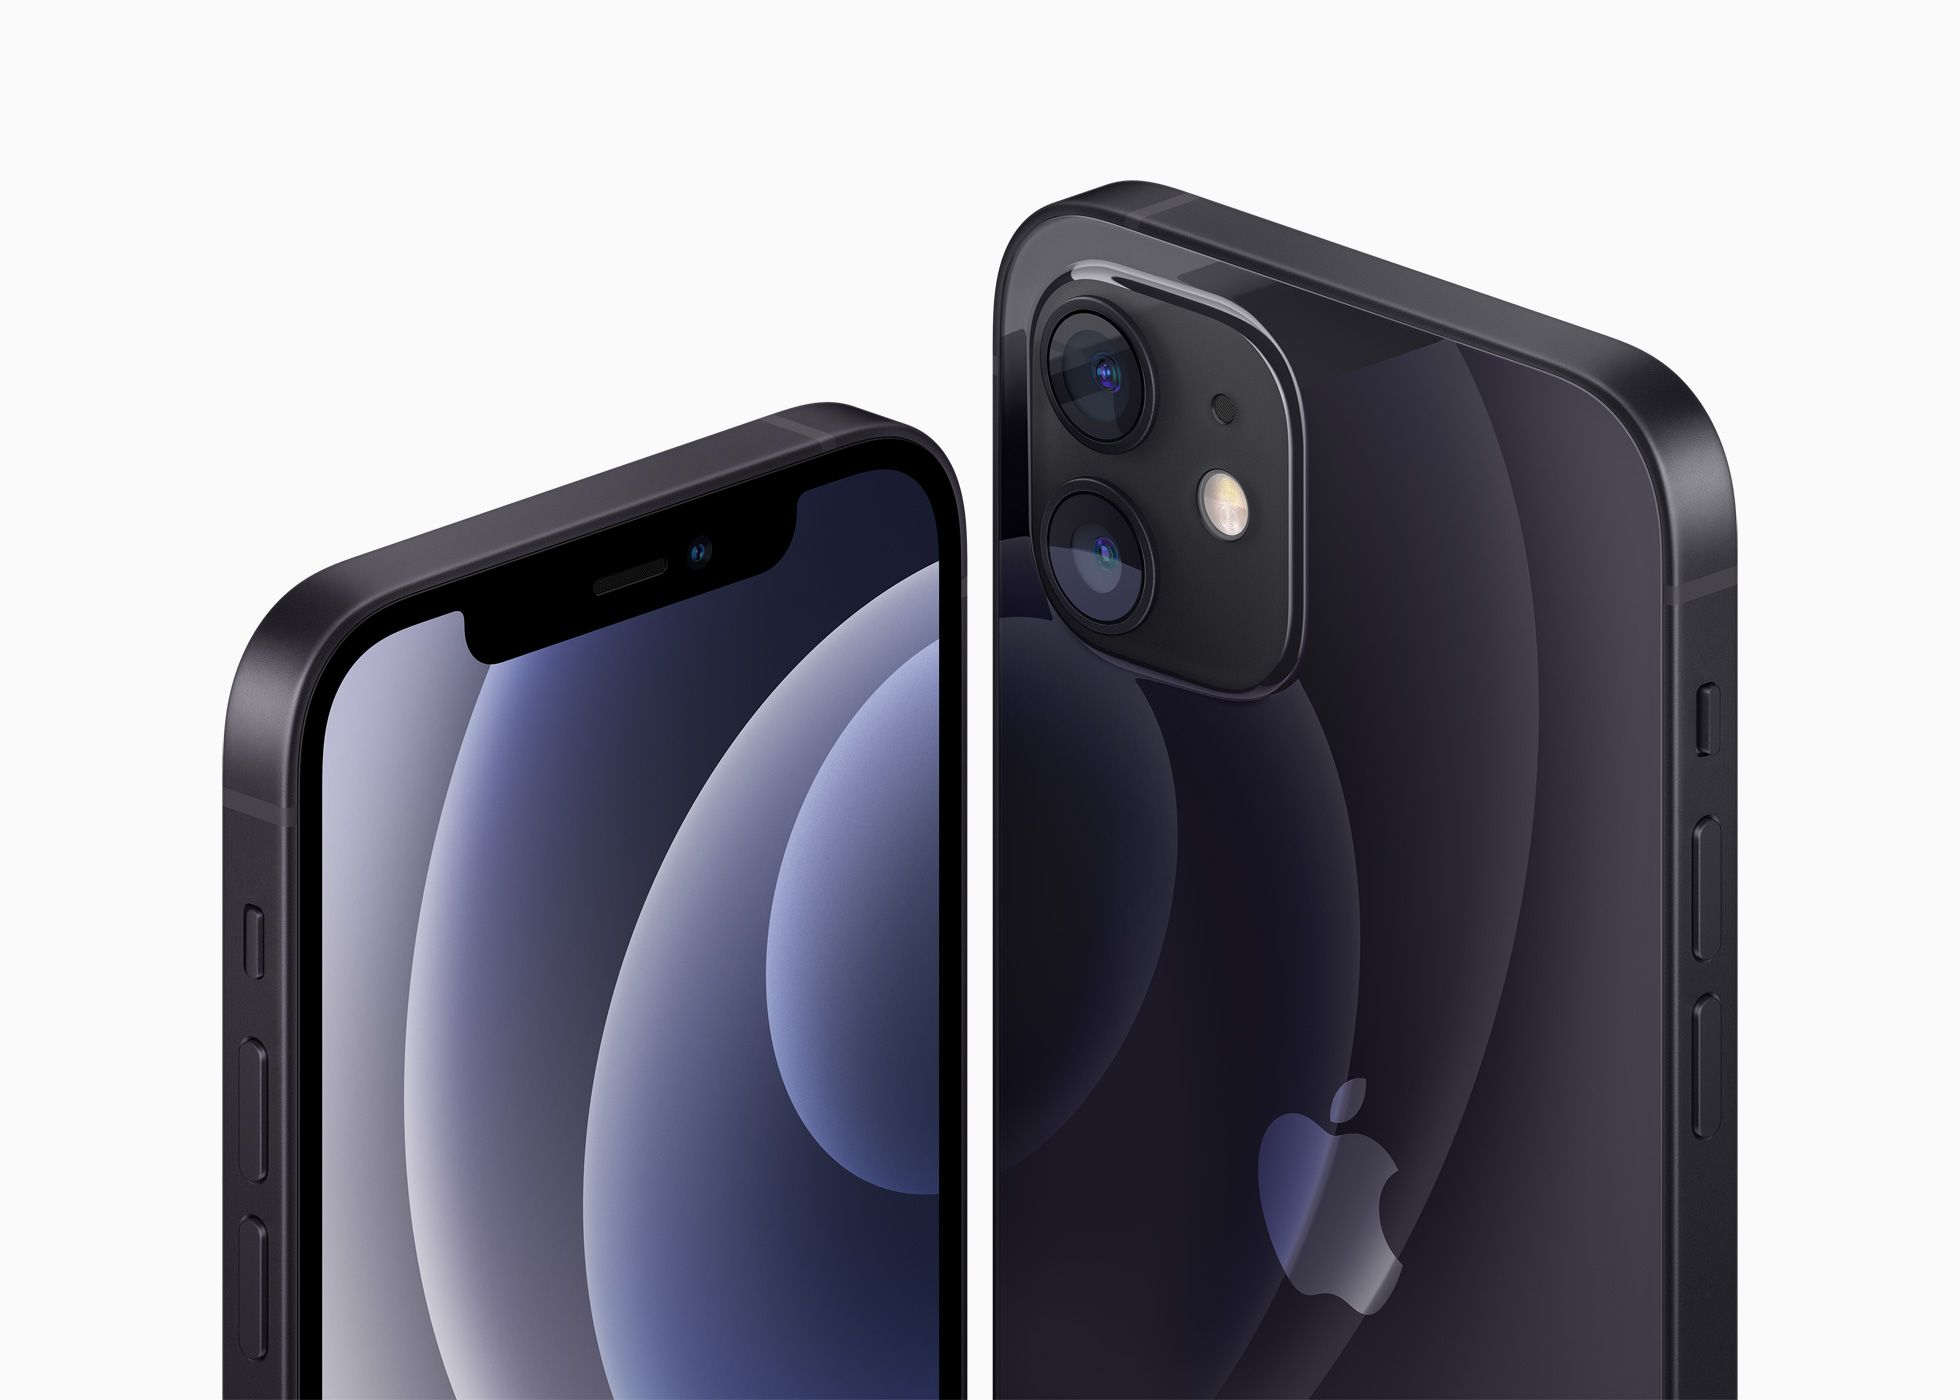 Apple Unveils 5G-Enabled iPhone 12 and iPhone 12 Pro Series—Pre-orders Begin on October 16 and November 6 in Singapore